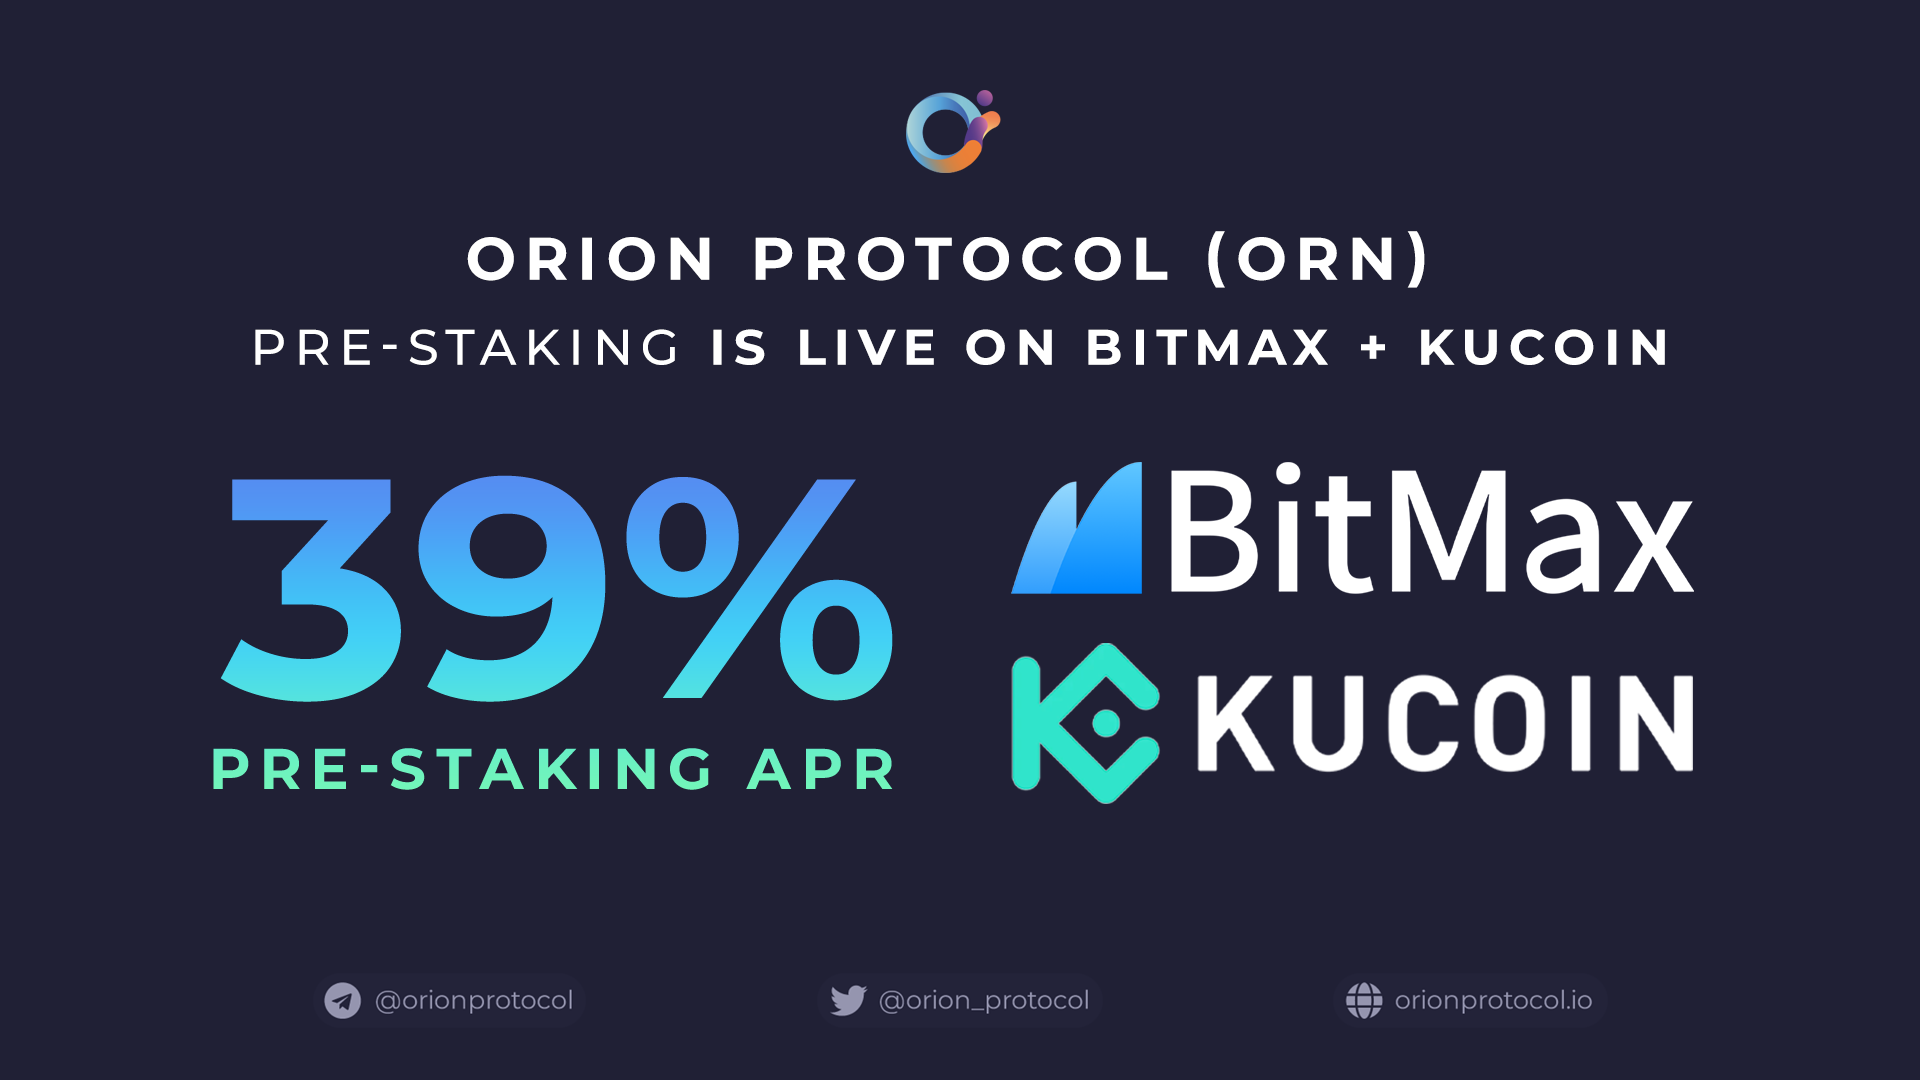 Orion's 39% APR Pre-Staking Initiative